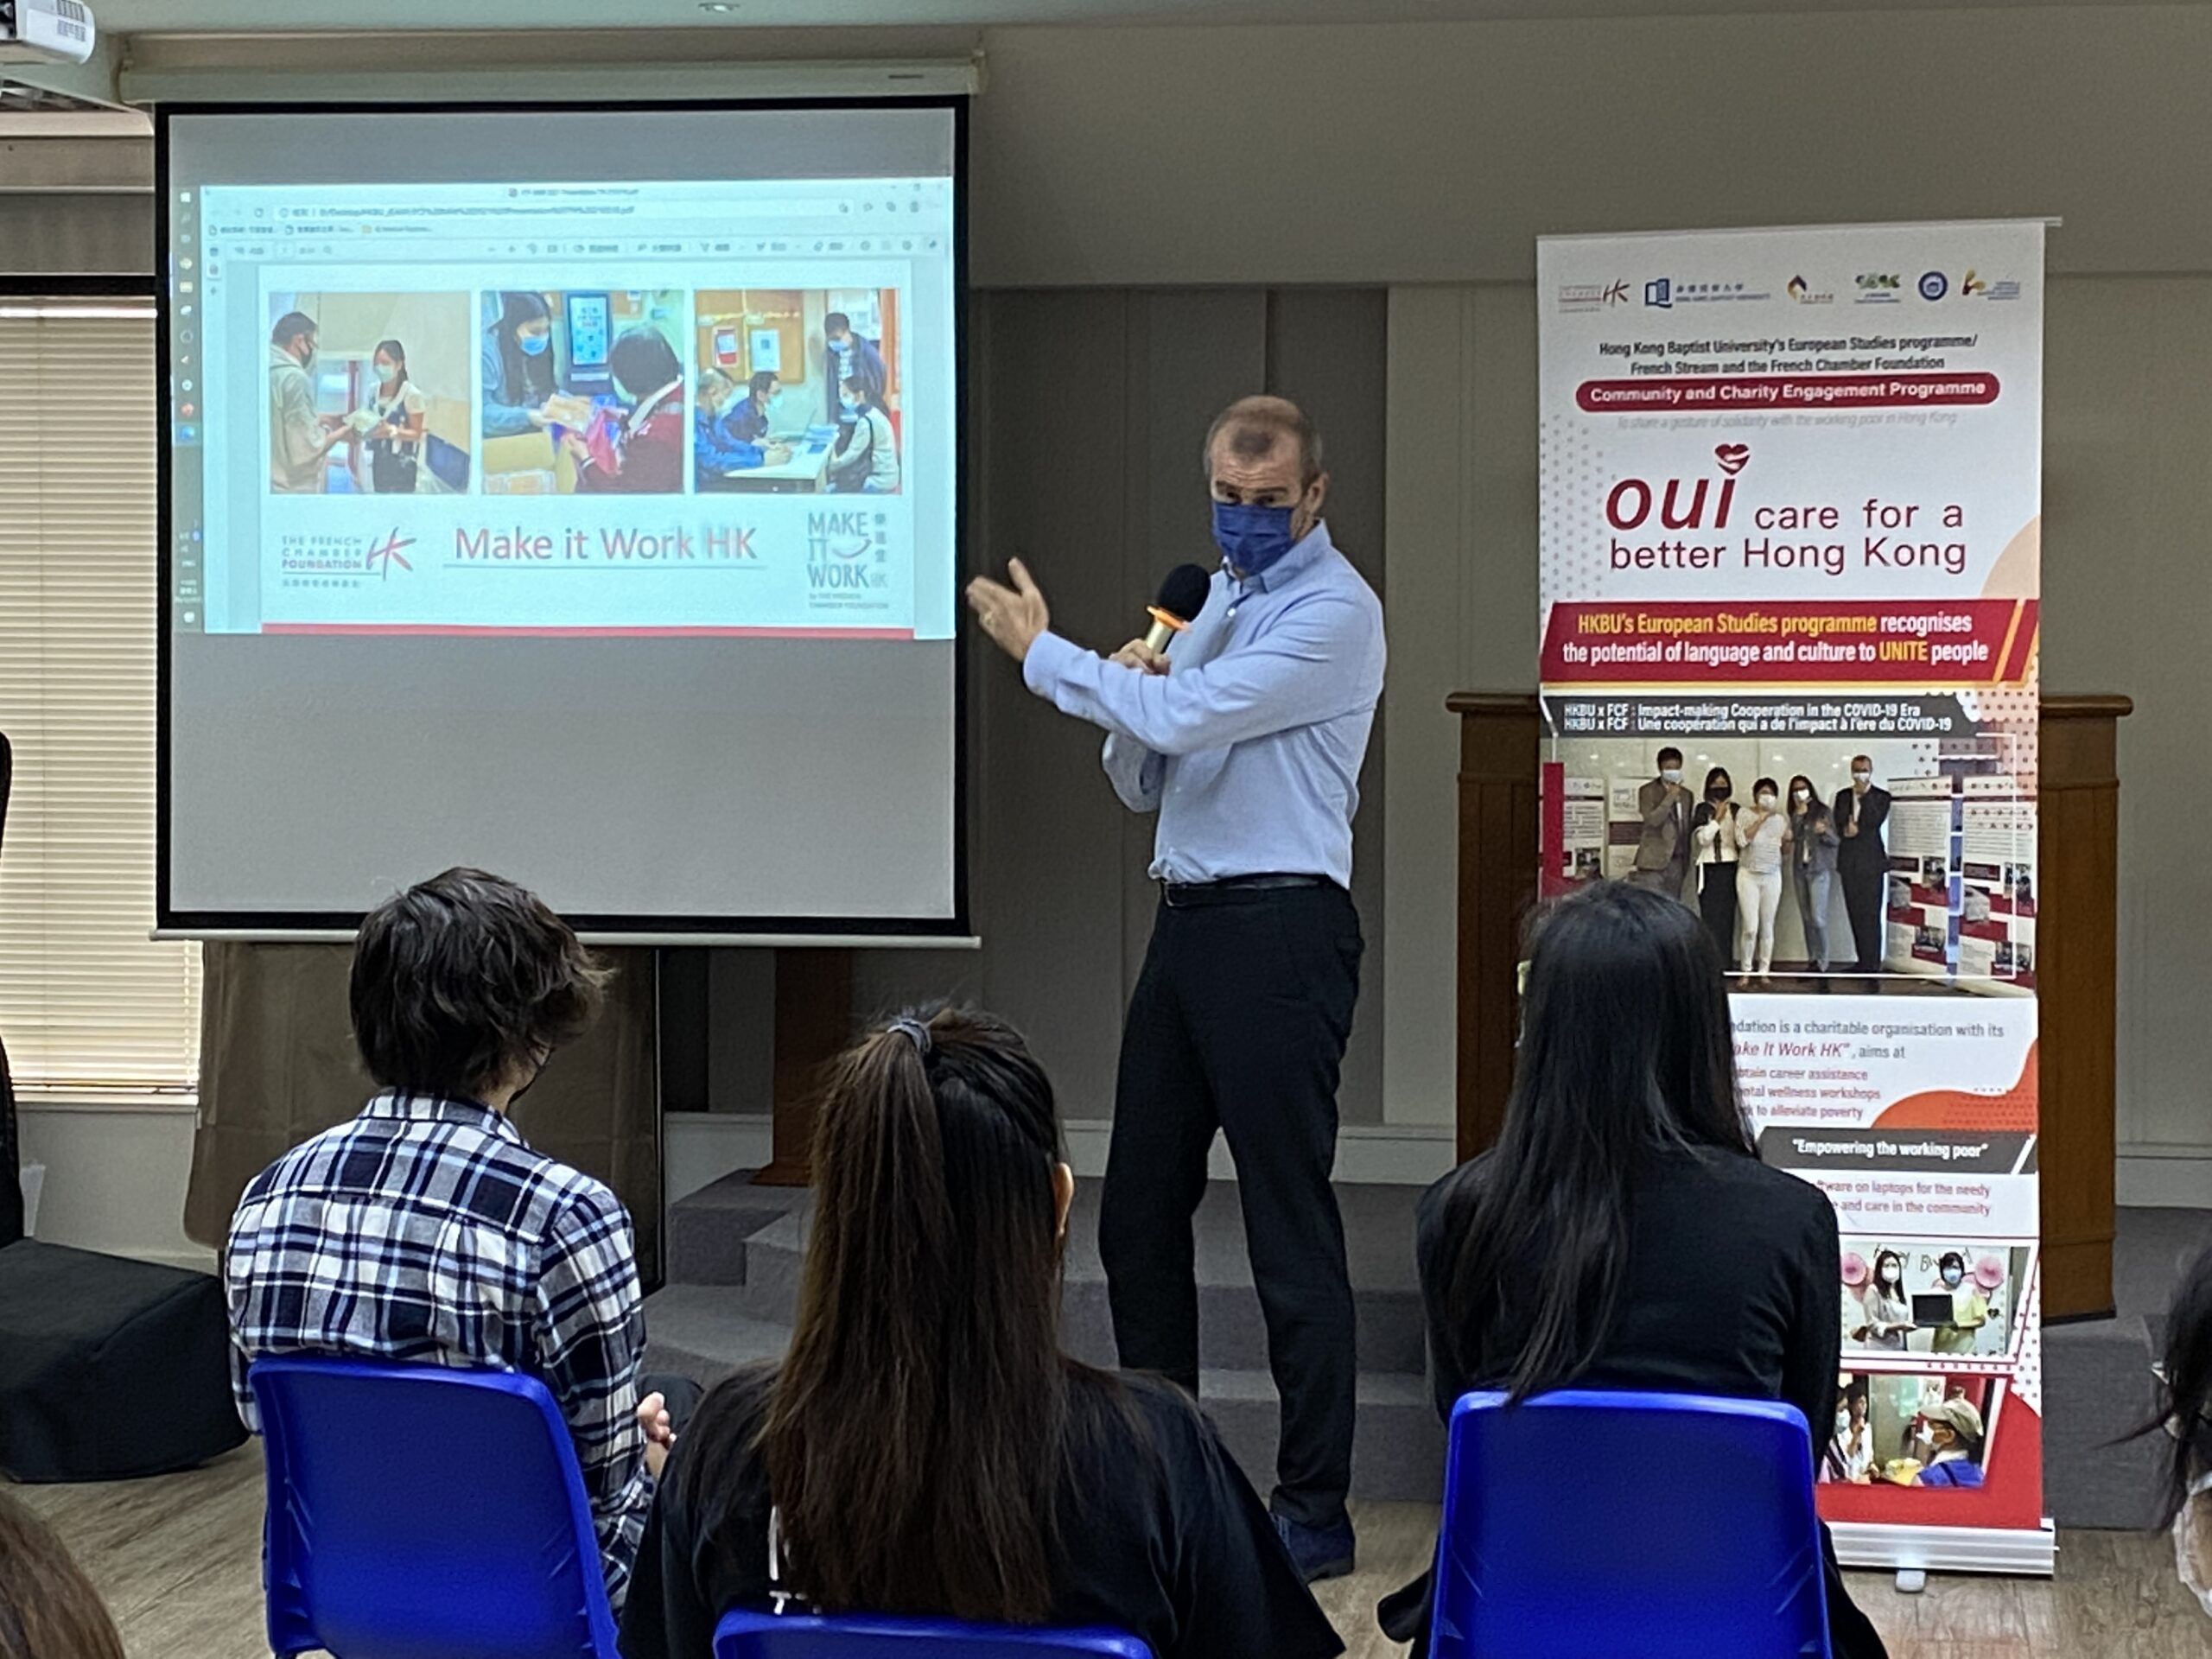 [Community and Charity Engagement Programme – initiated by HKBU]